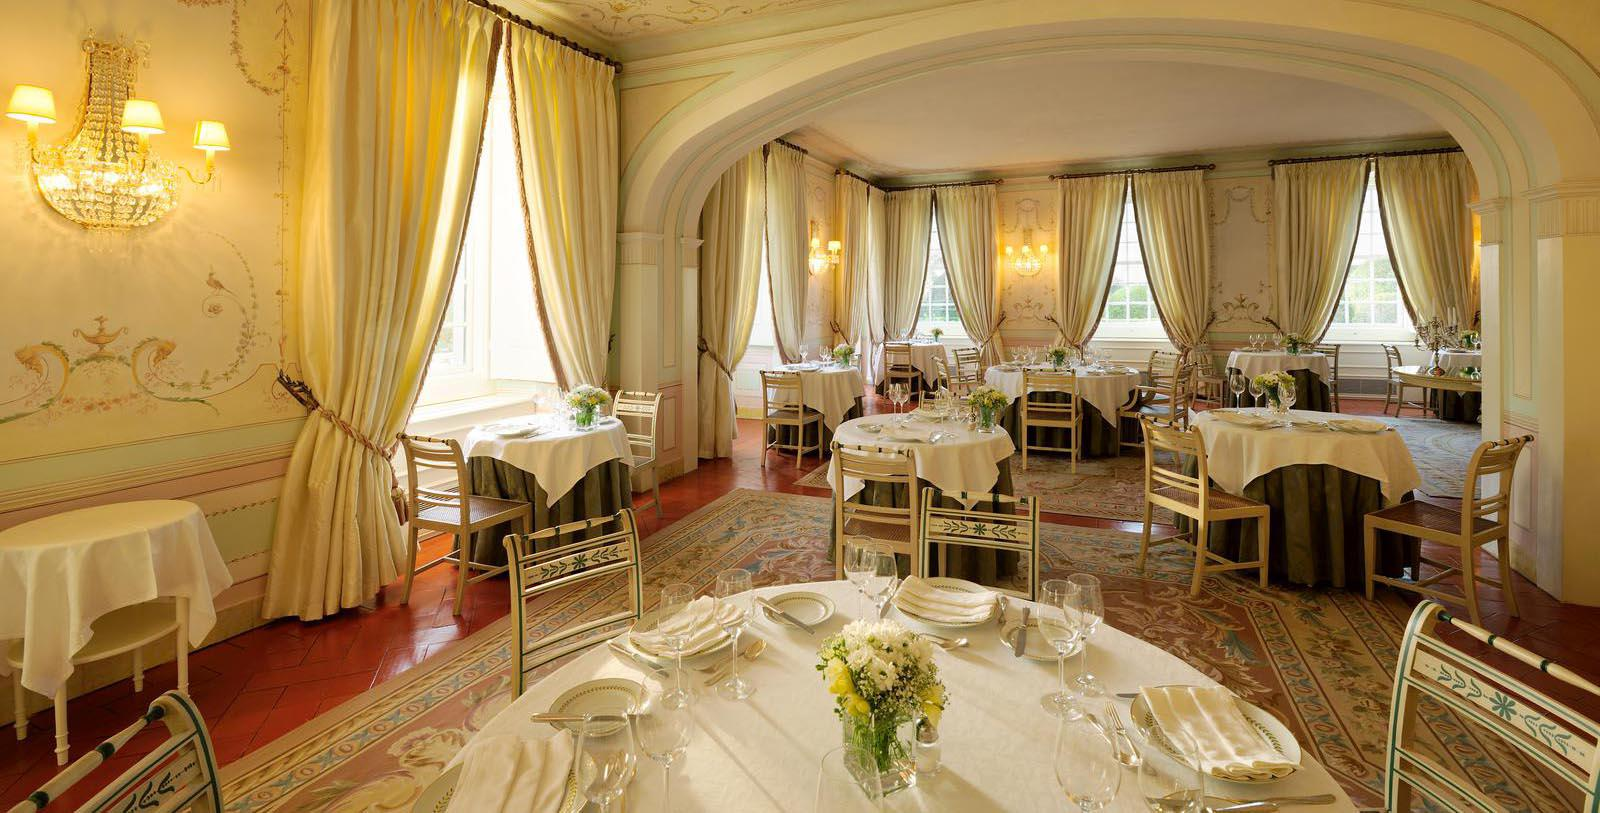 Image of Dining Room at Seteais Restaurant at Tivoli Palacio de Seteais, 1787, Member of Historic Hotels Worldwide, in Sintra, Portugal, Taste